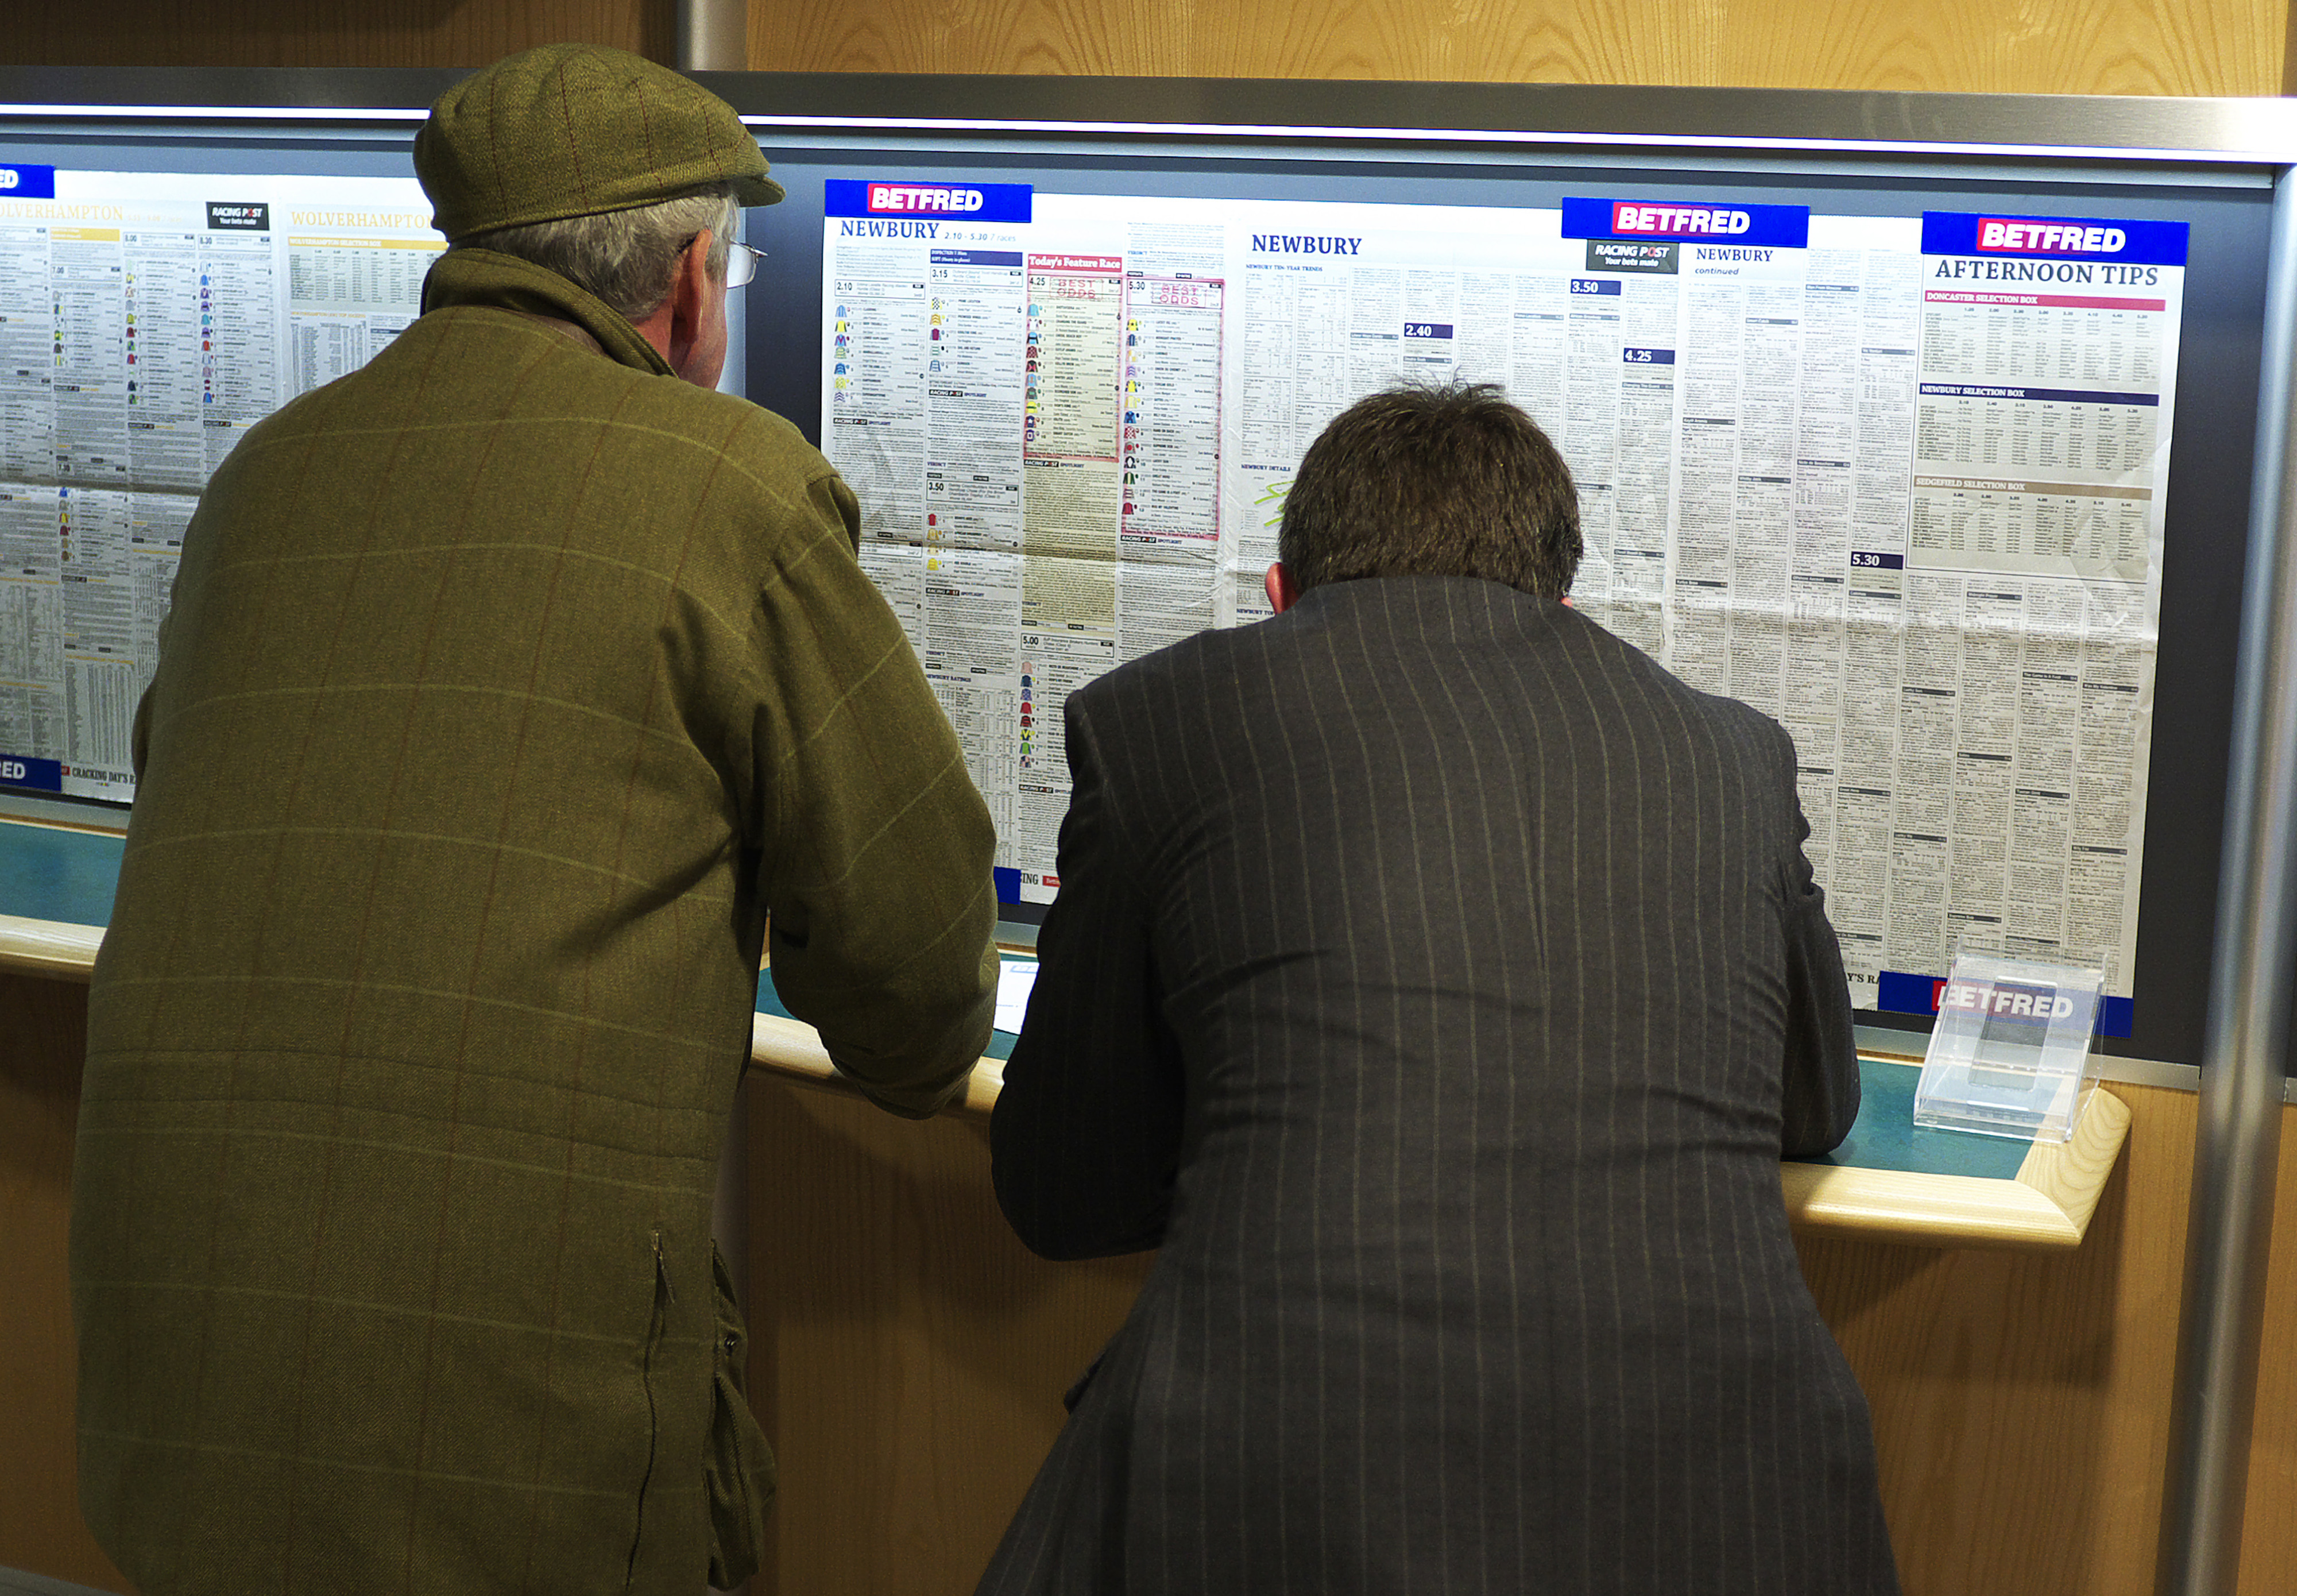 So many betting options. So little time.